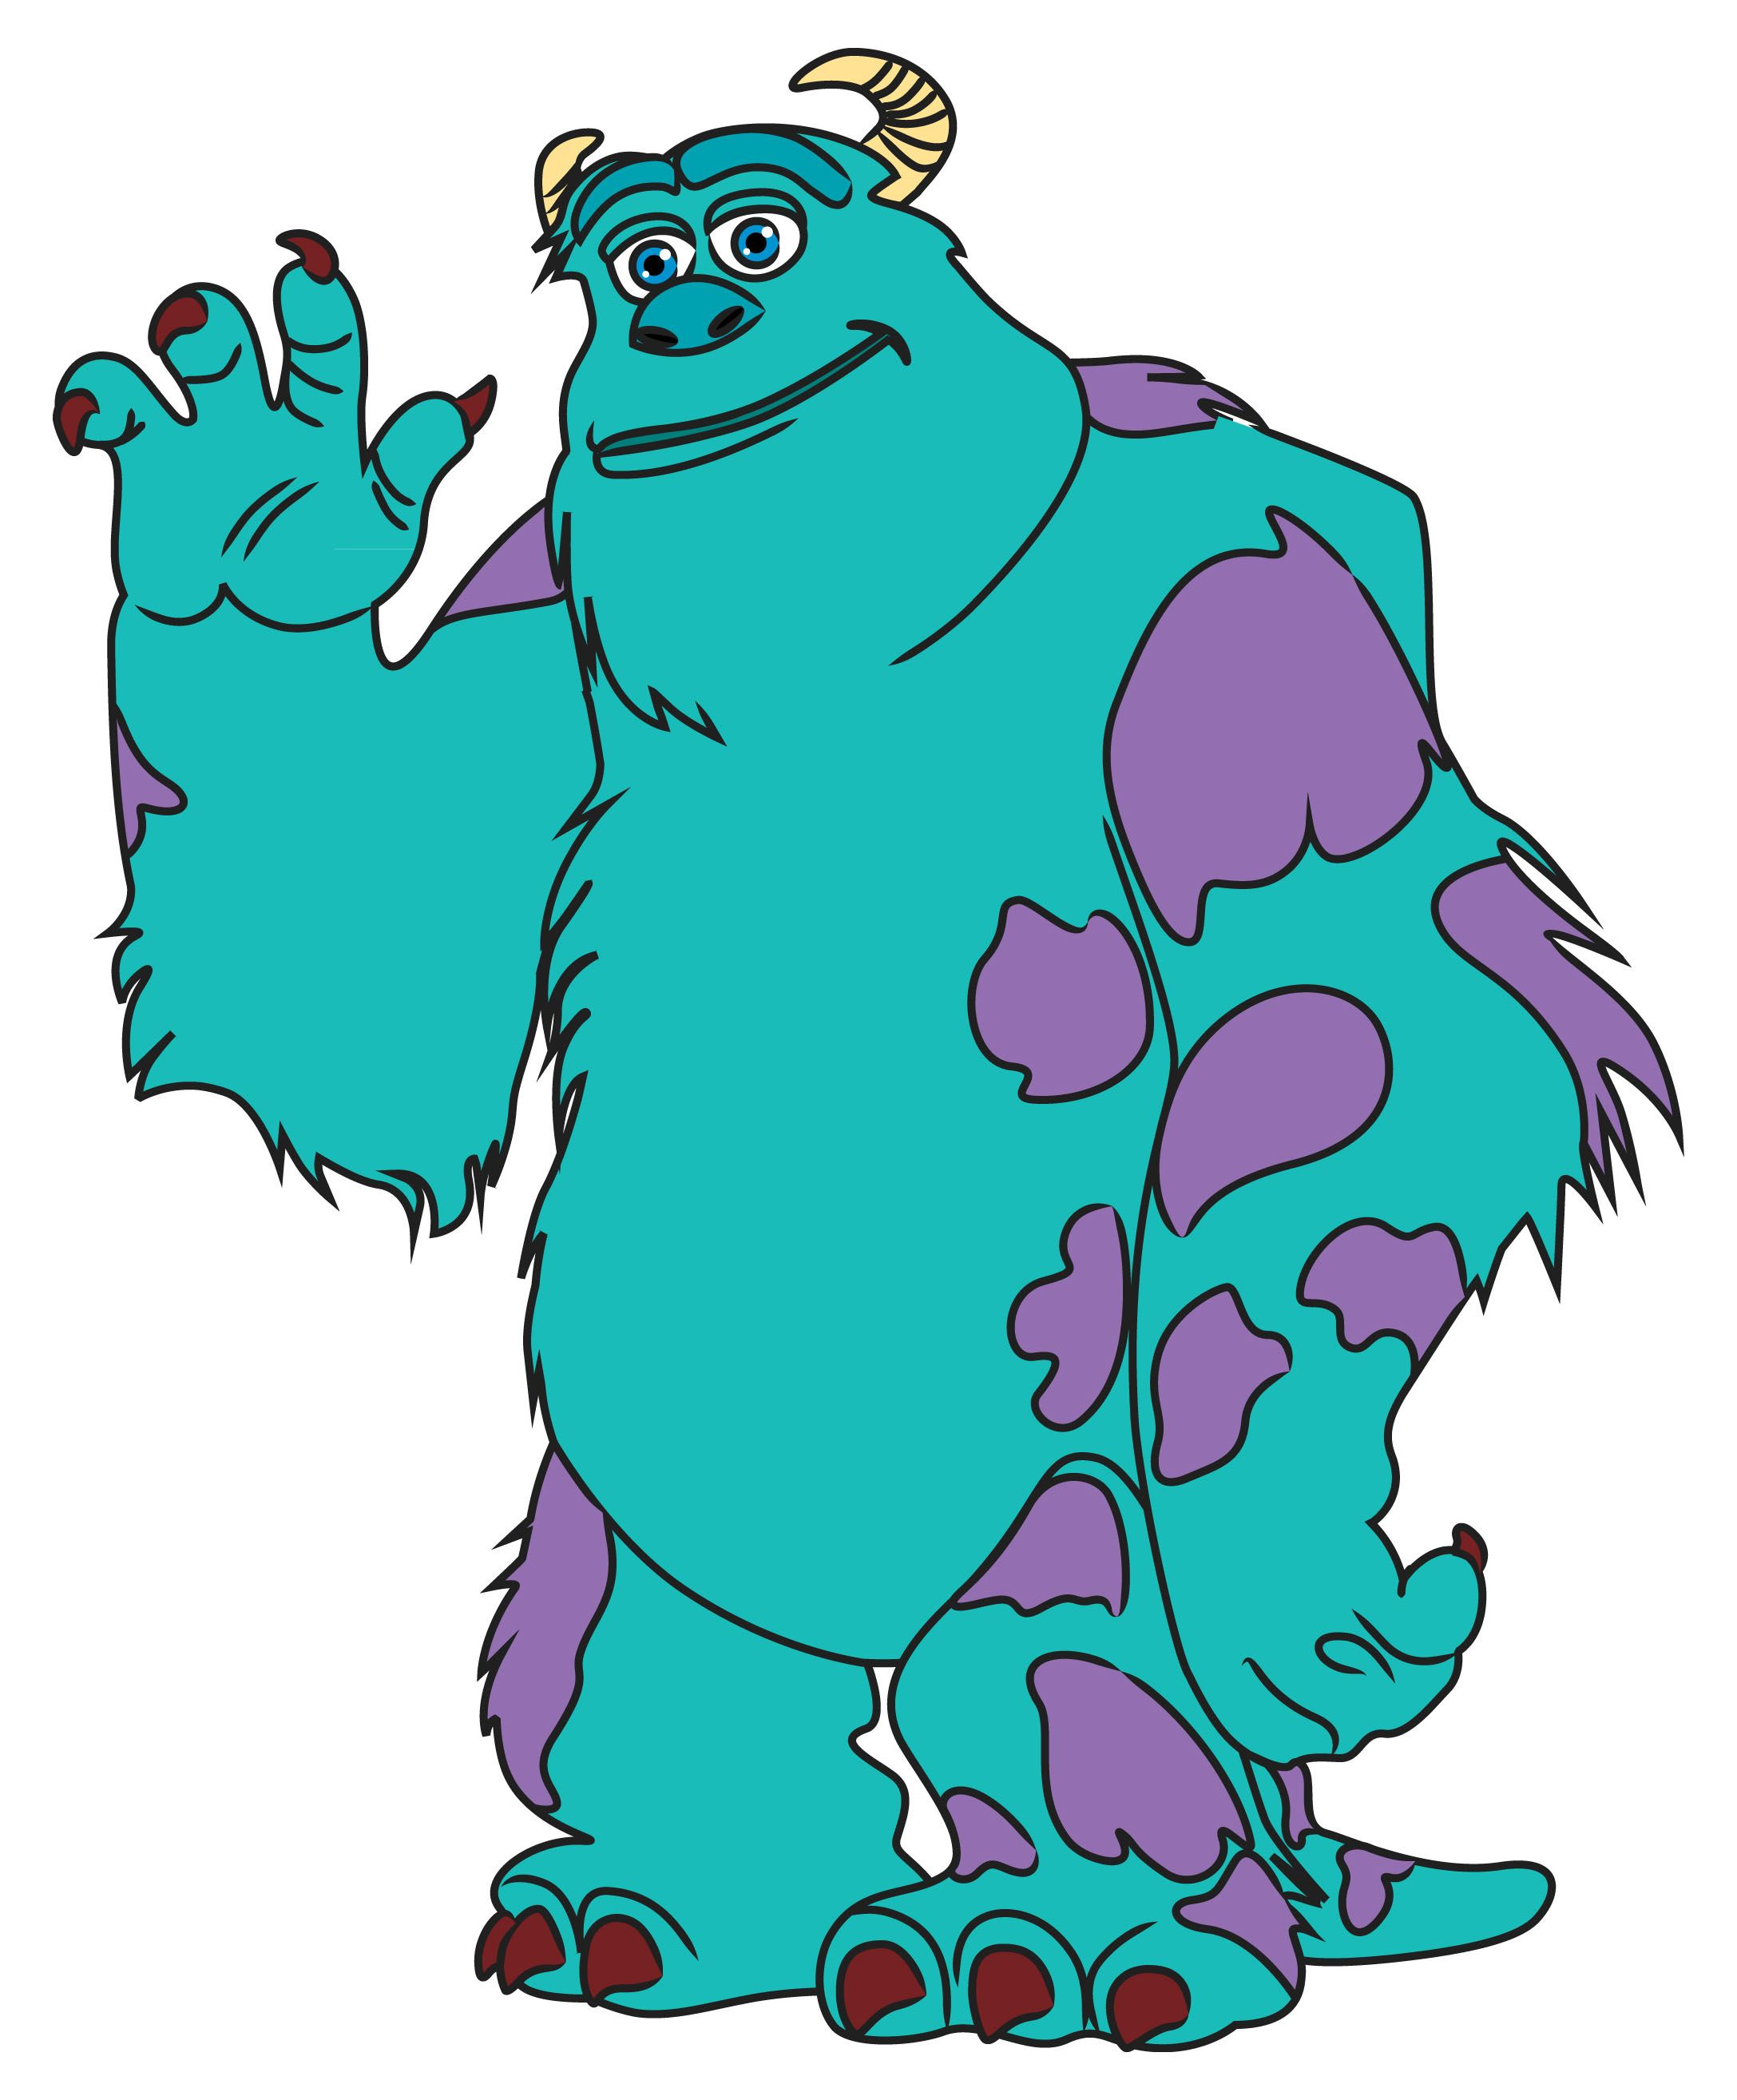 sully from monsters inc - Google Search | ENFJ | Pinterest